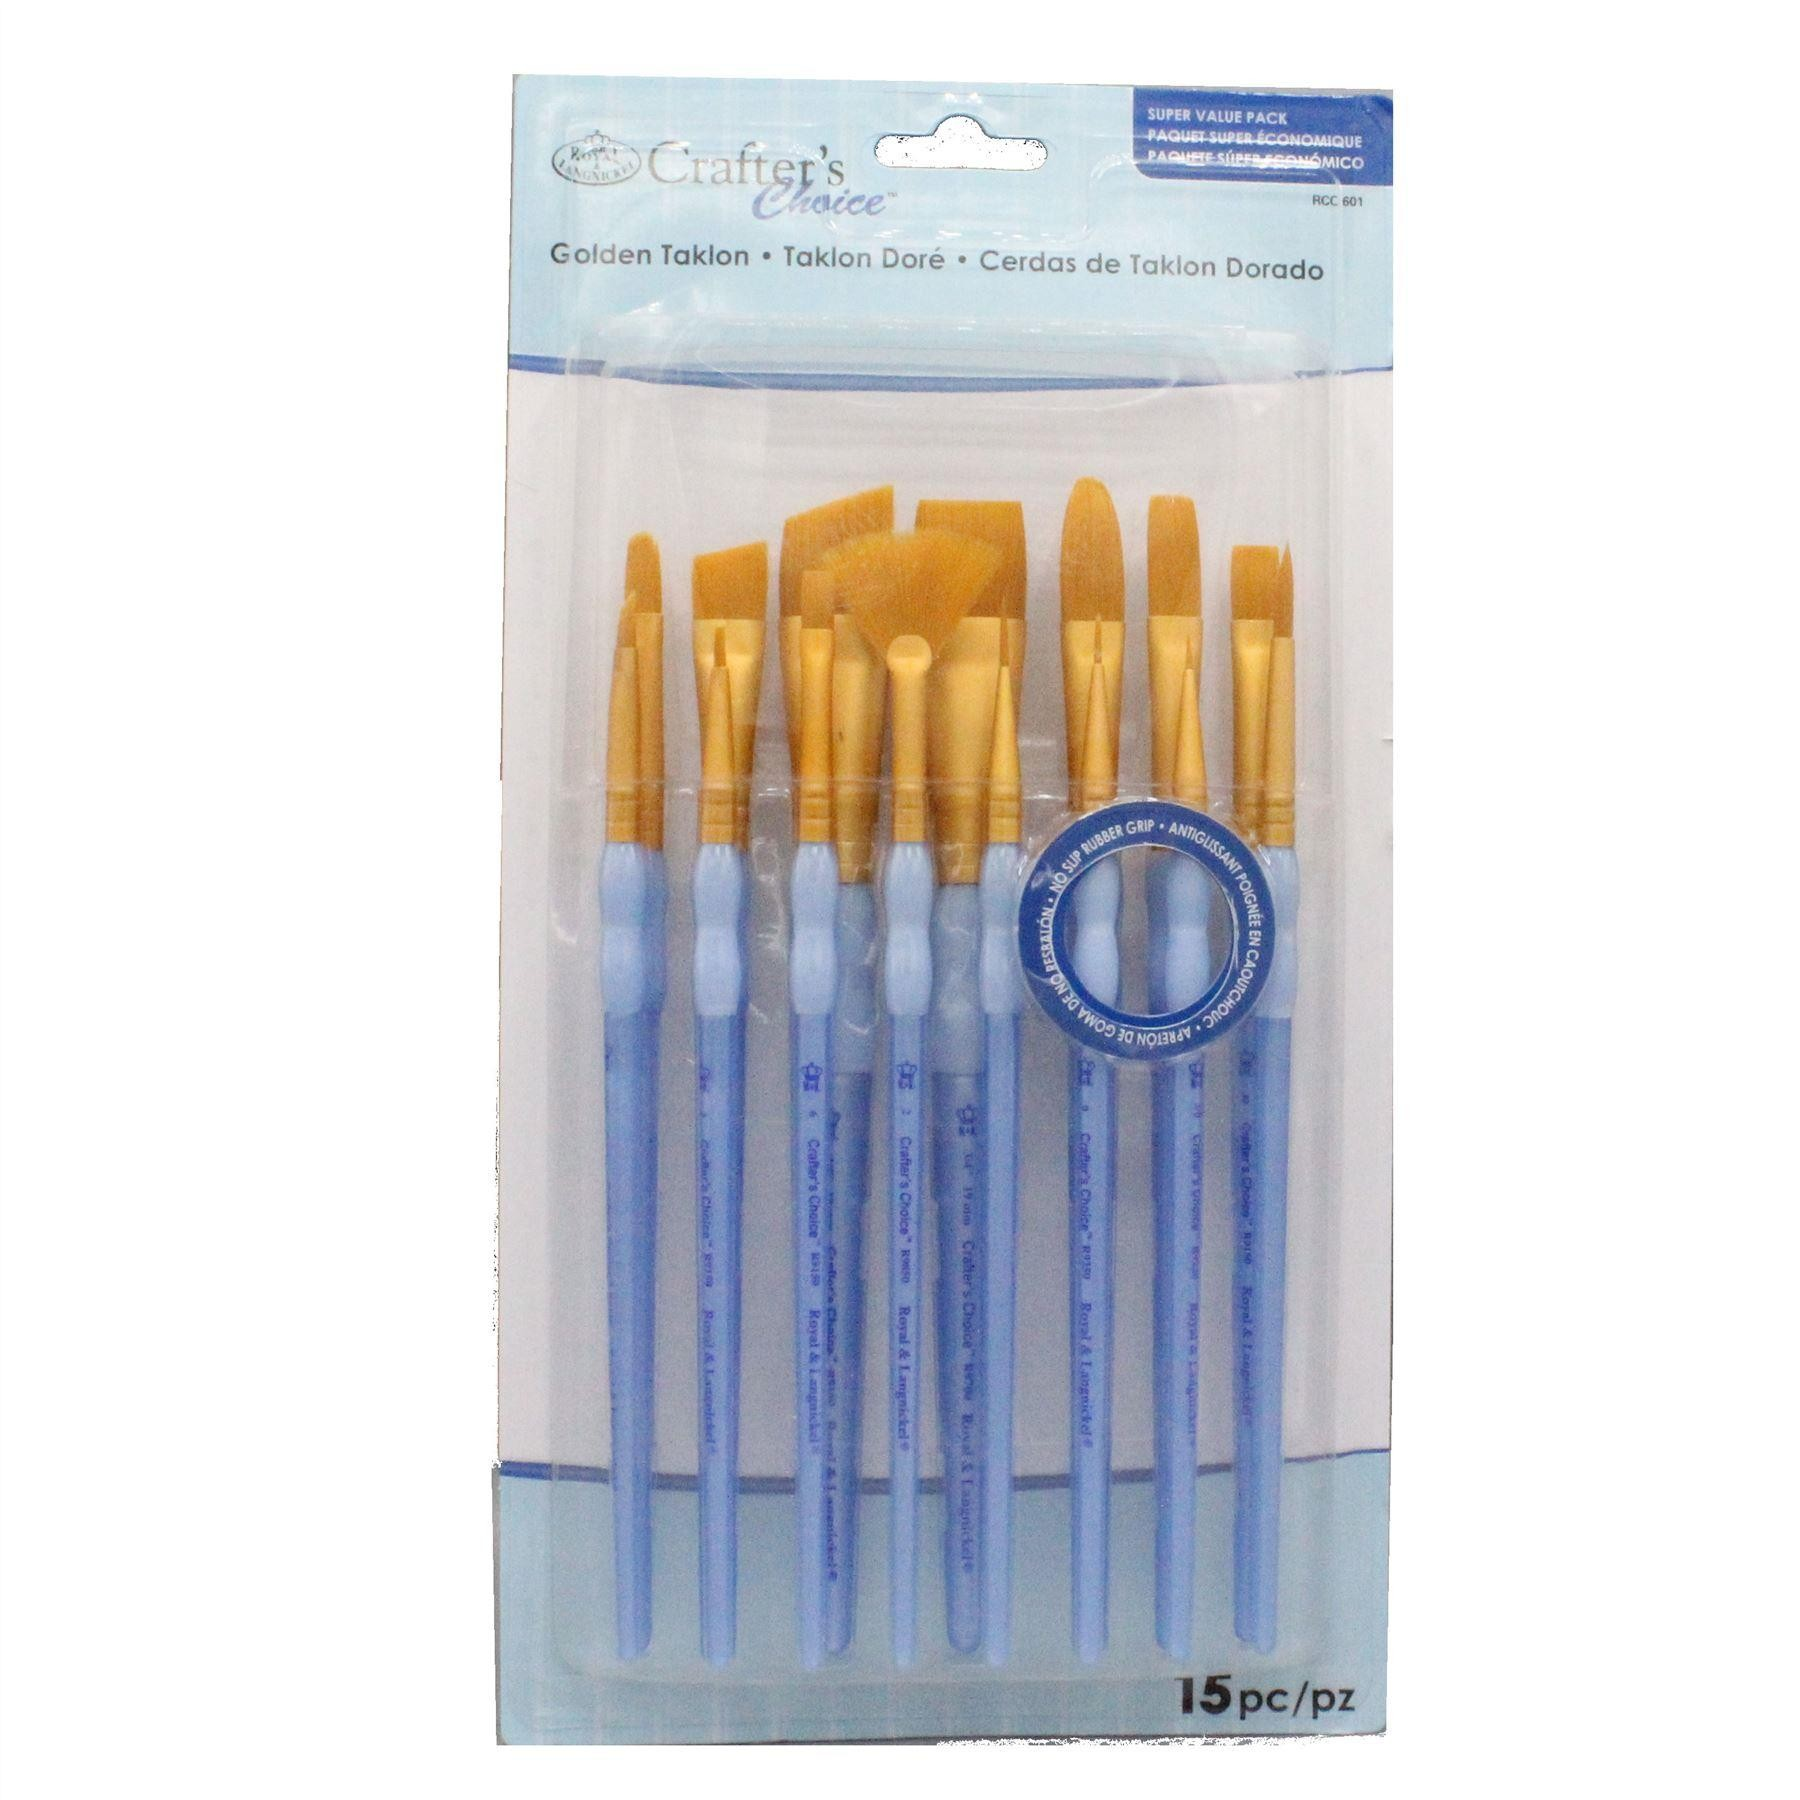 Royal & Langnickel Artists' Super Value Pack, 15 Soft Grip Brushes - RCC-600 Series